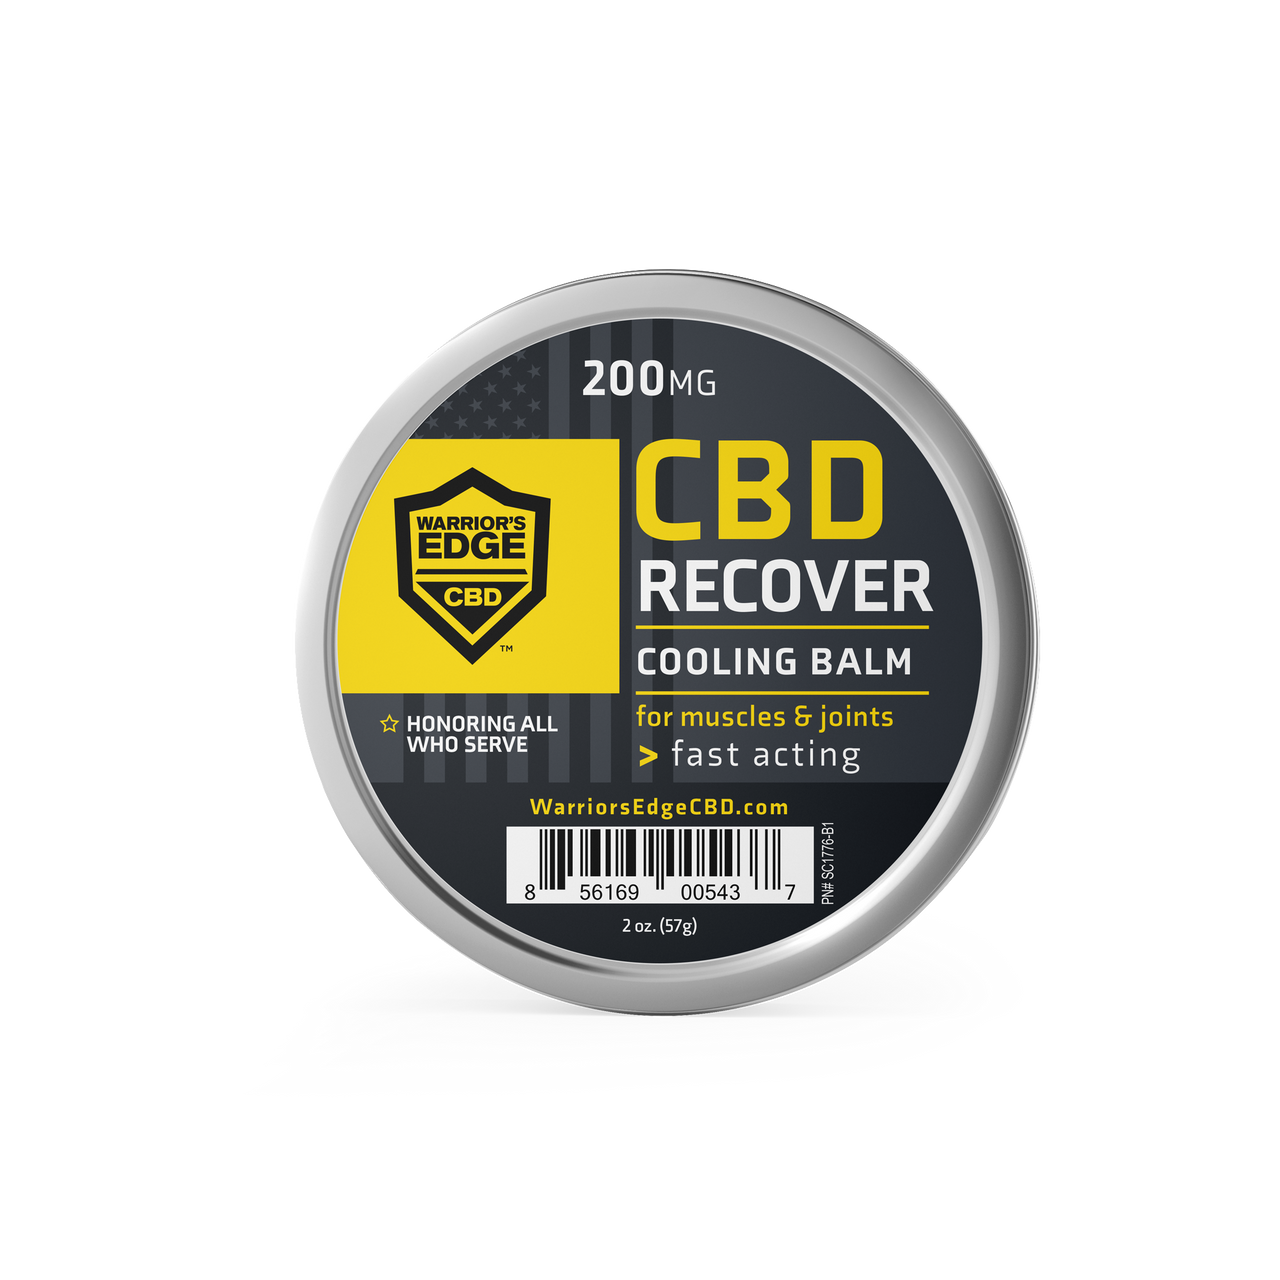 Warriors Edge Balm, 2oz tin (200mg CBD)